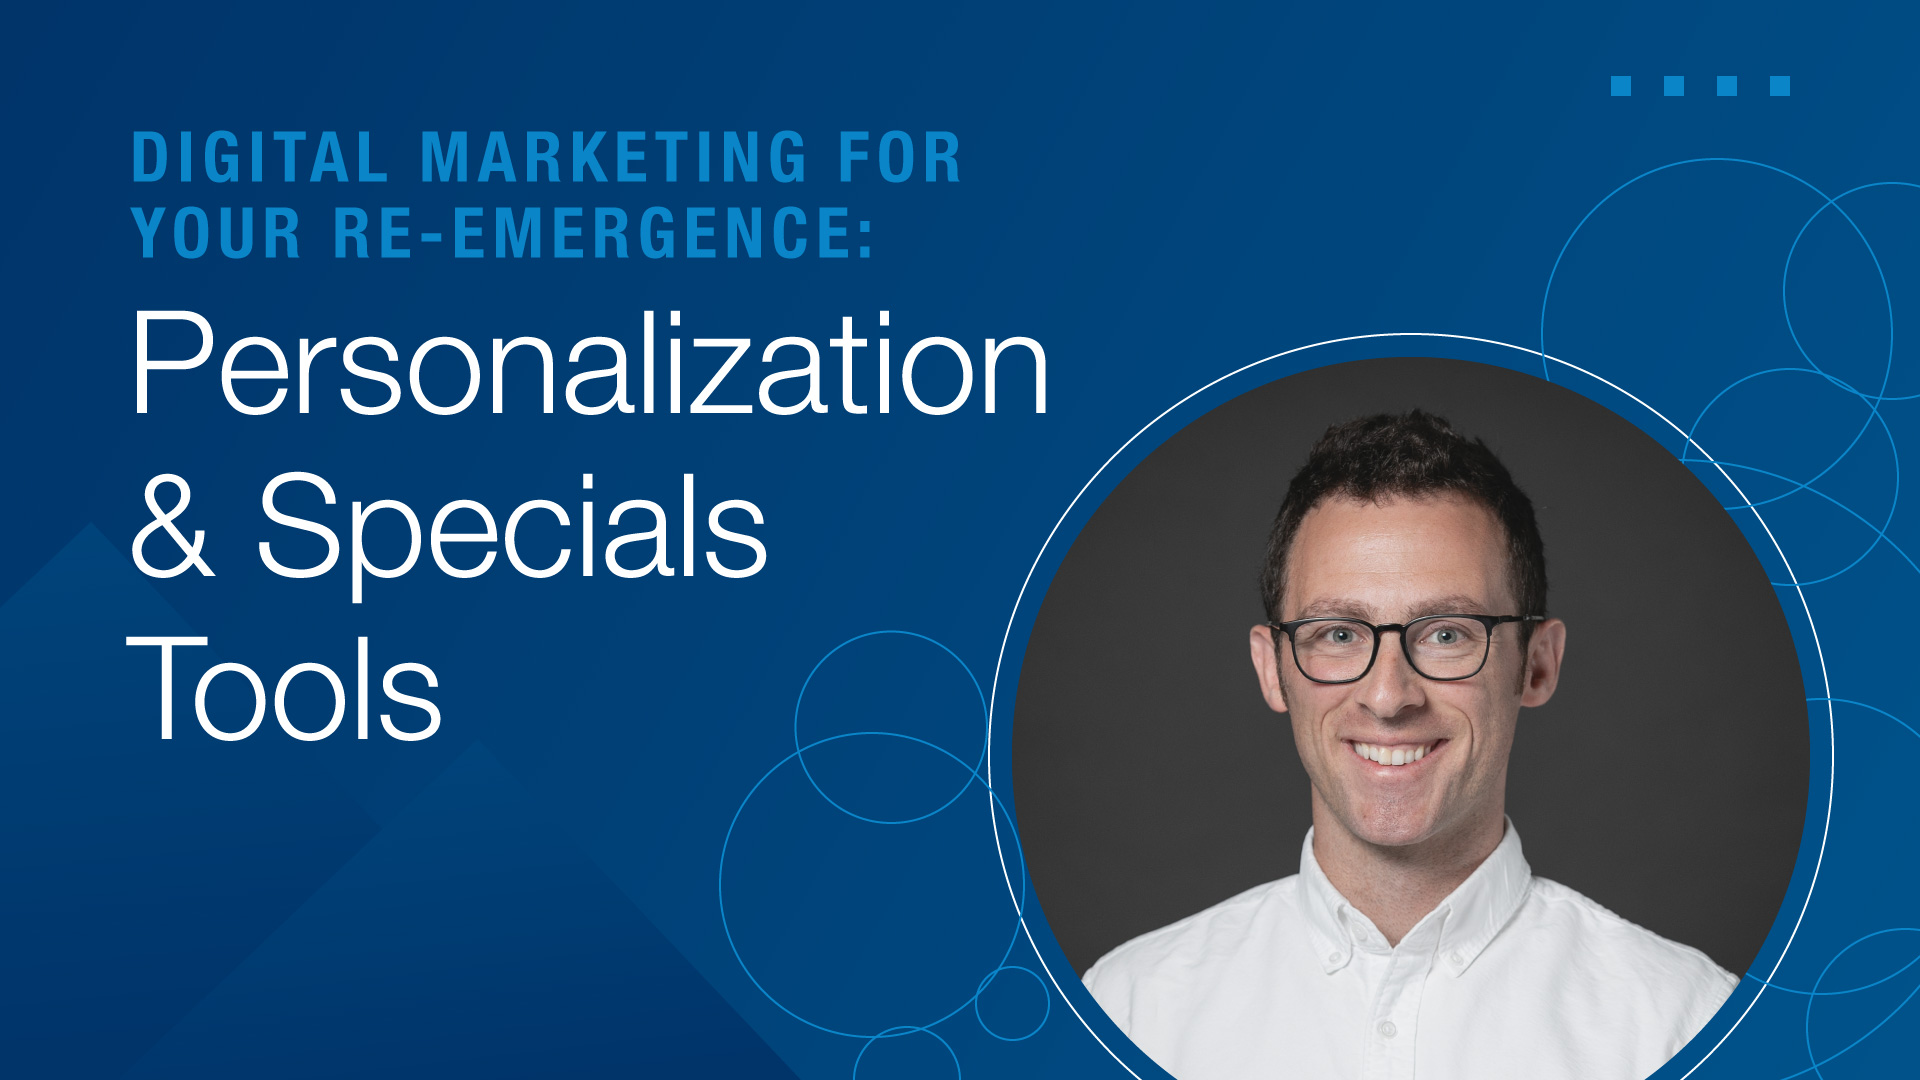 Digital Marketing for Your Re-emergence: Personalization and Specials Tools